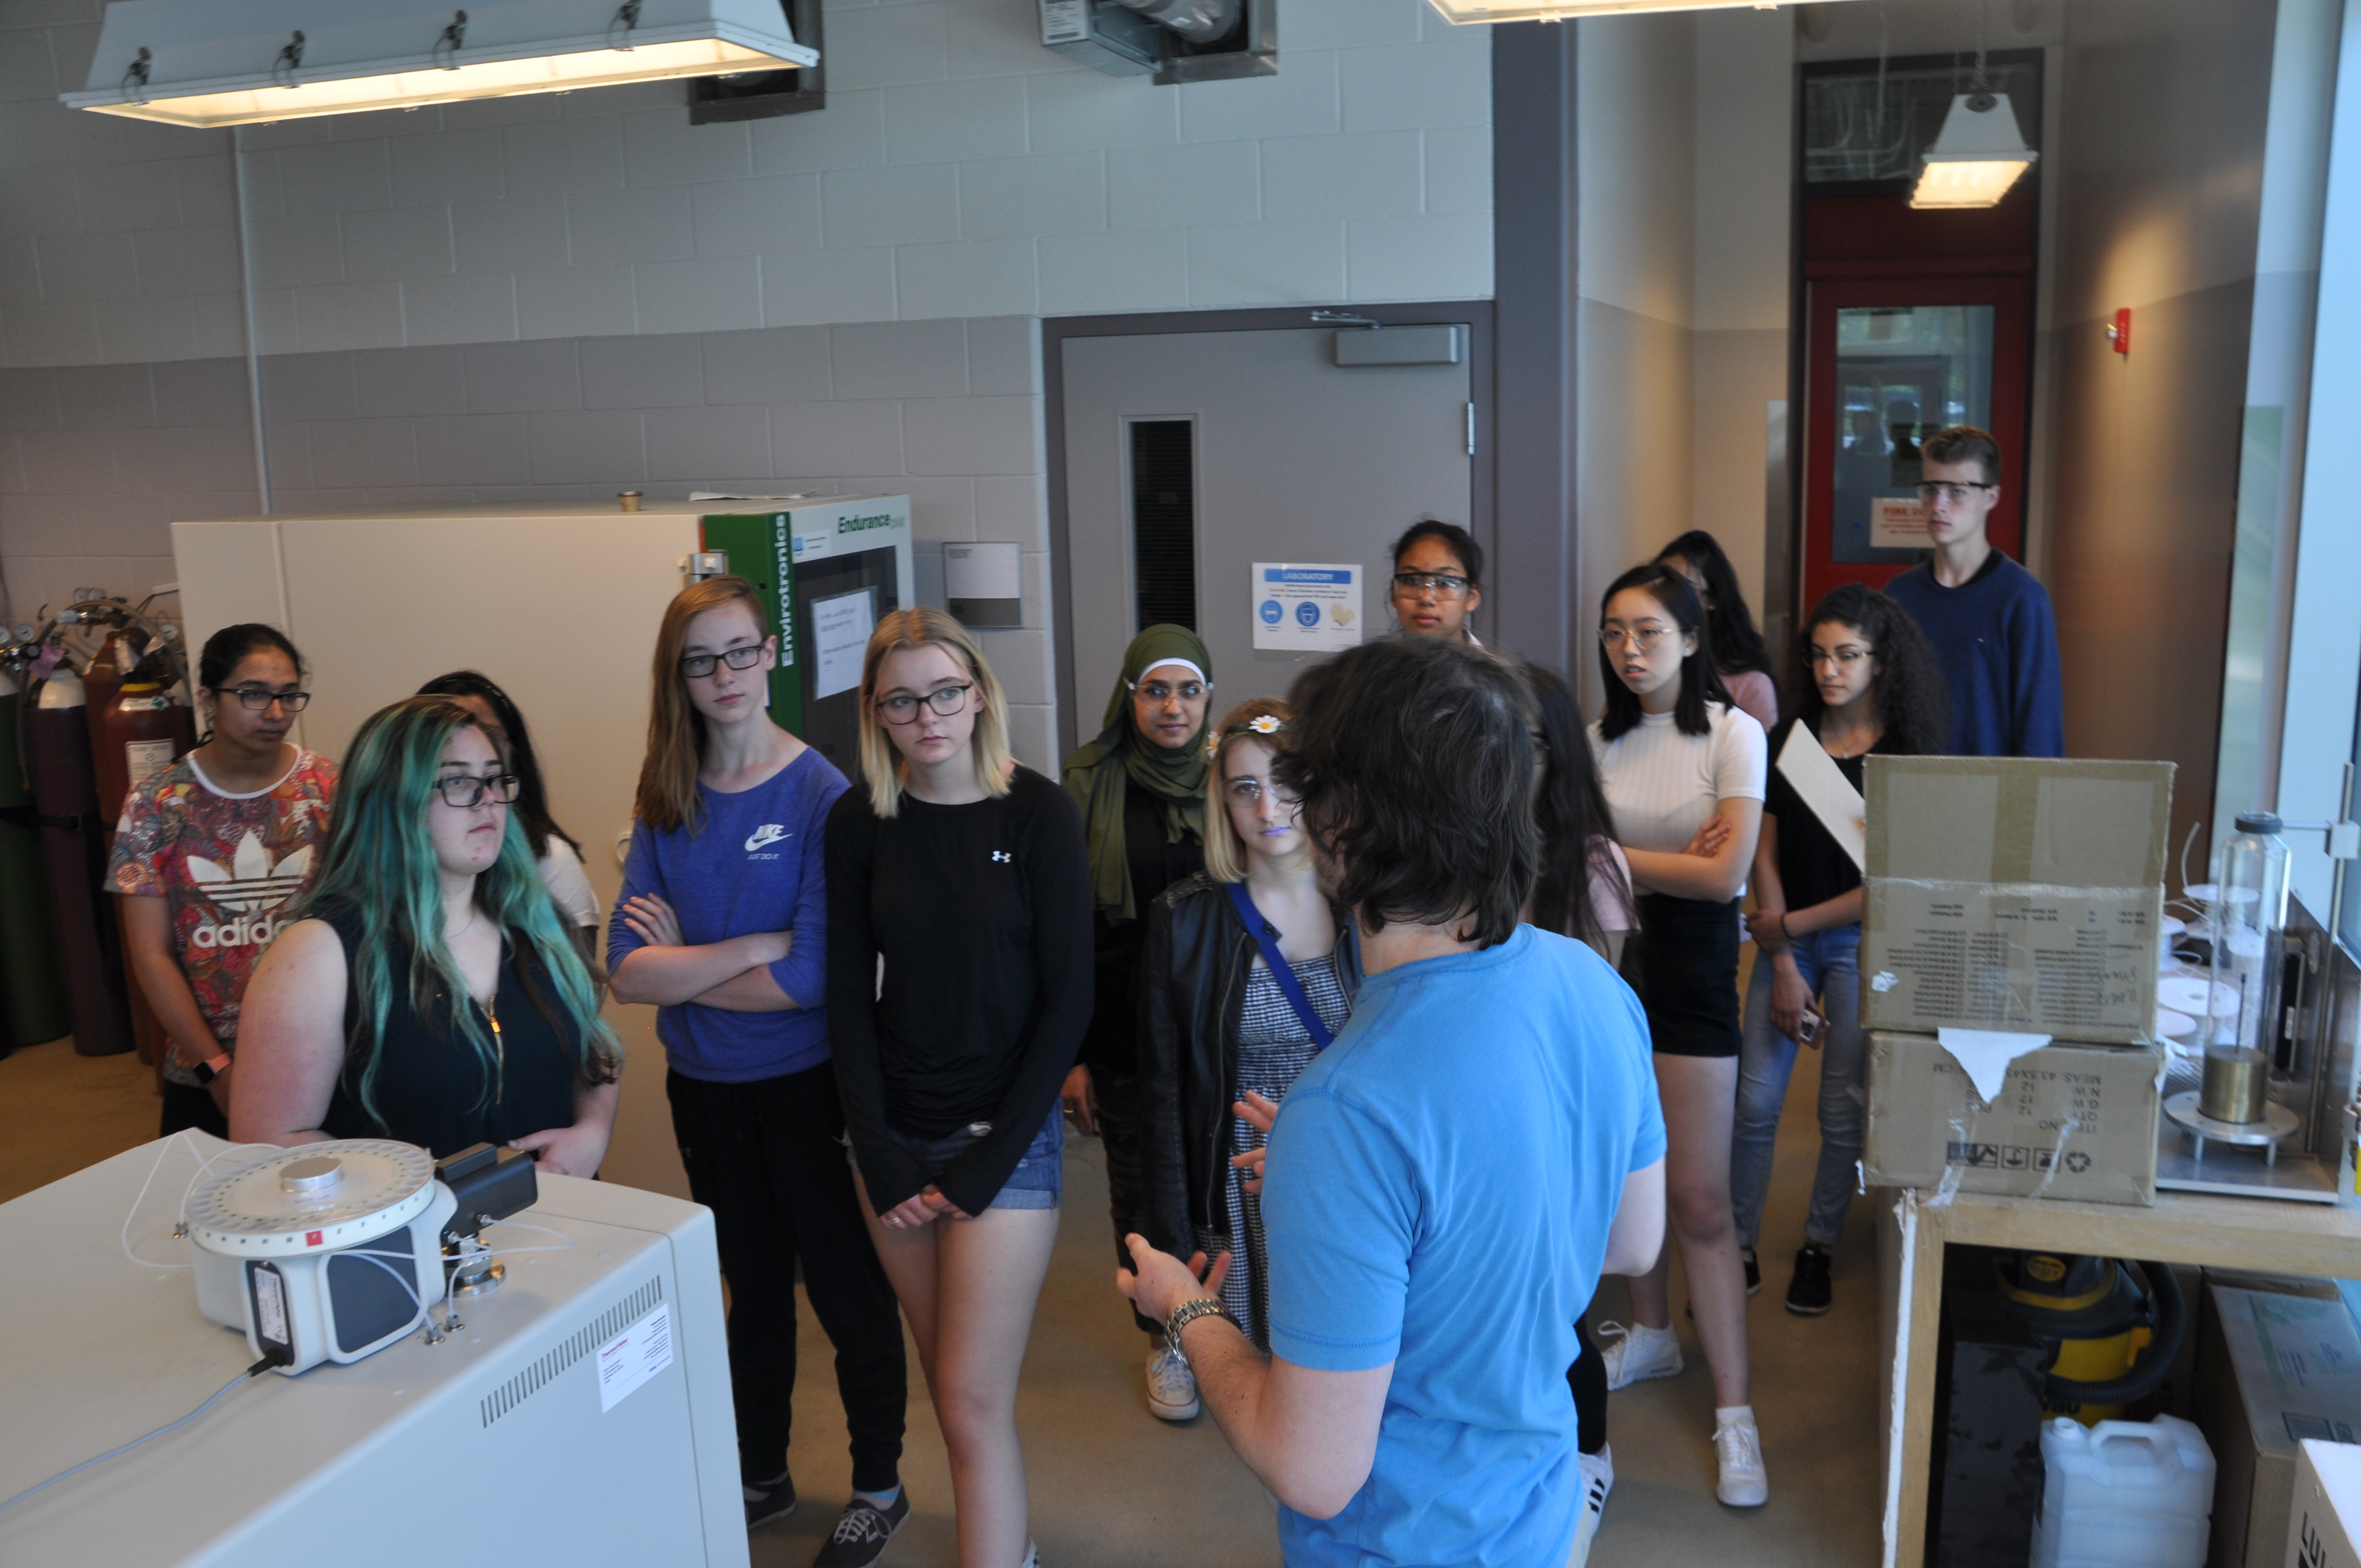 Michael Snowdon leading a group of high school students through the Bioproducts Facility